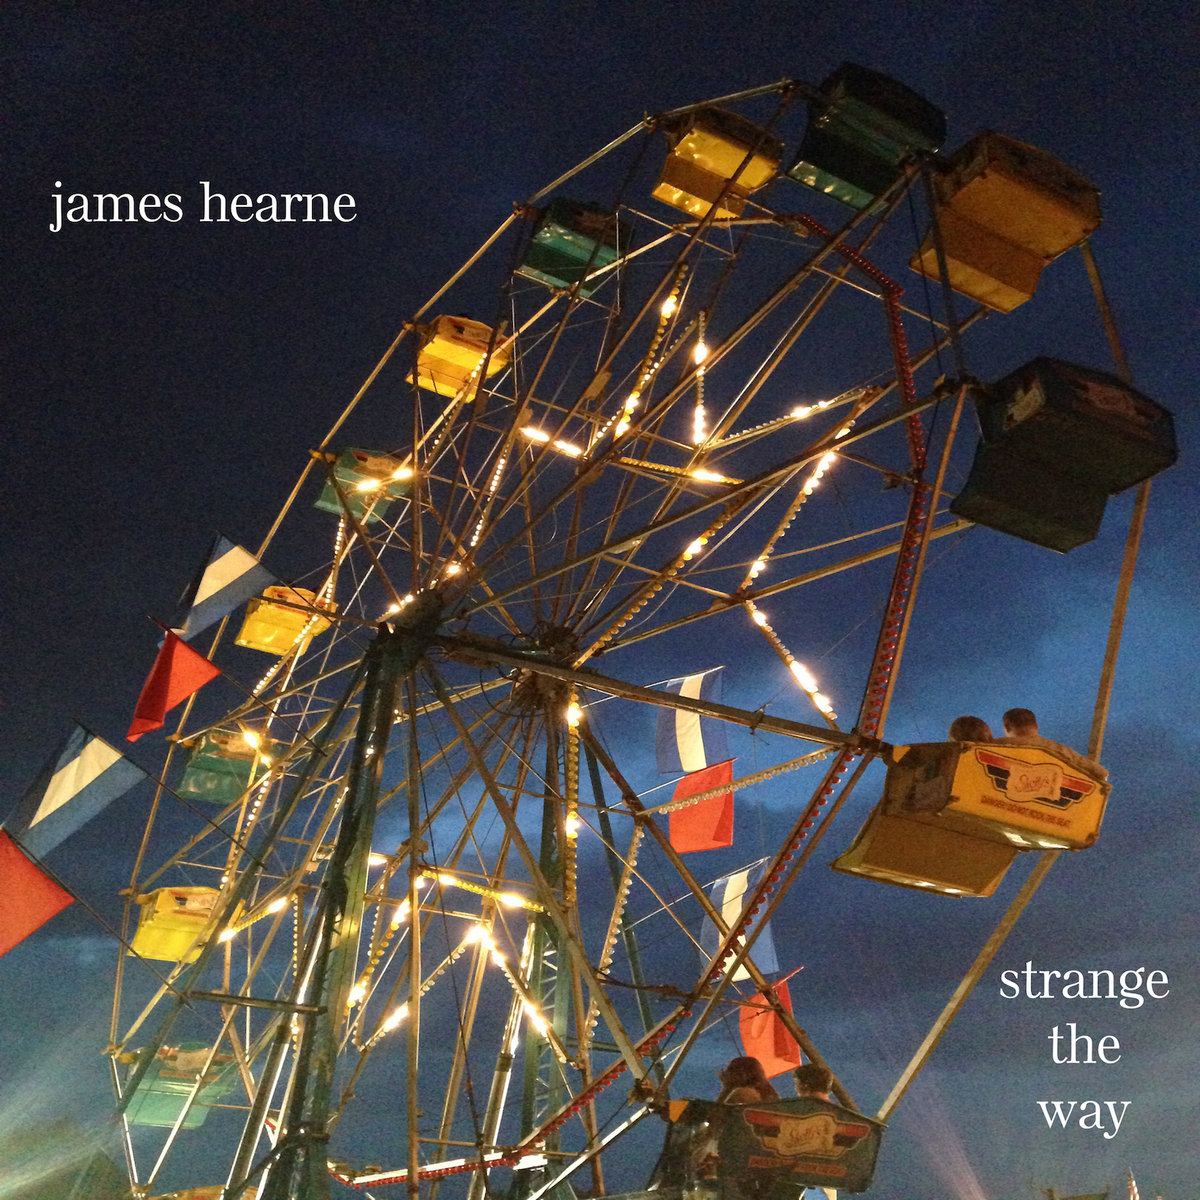 Strange The Way by James Hearne